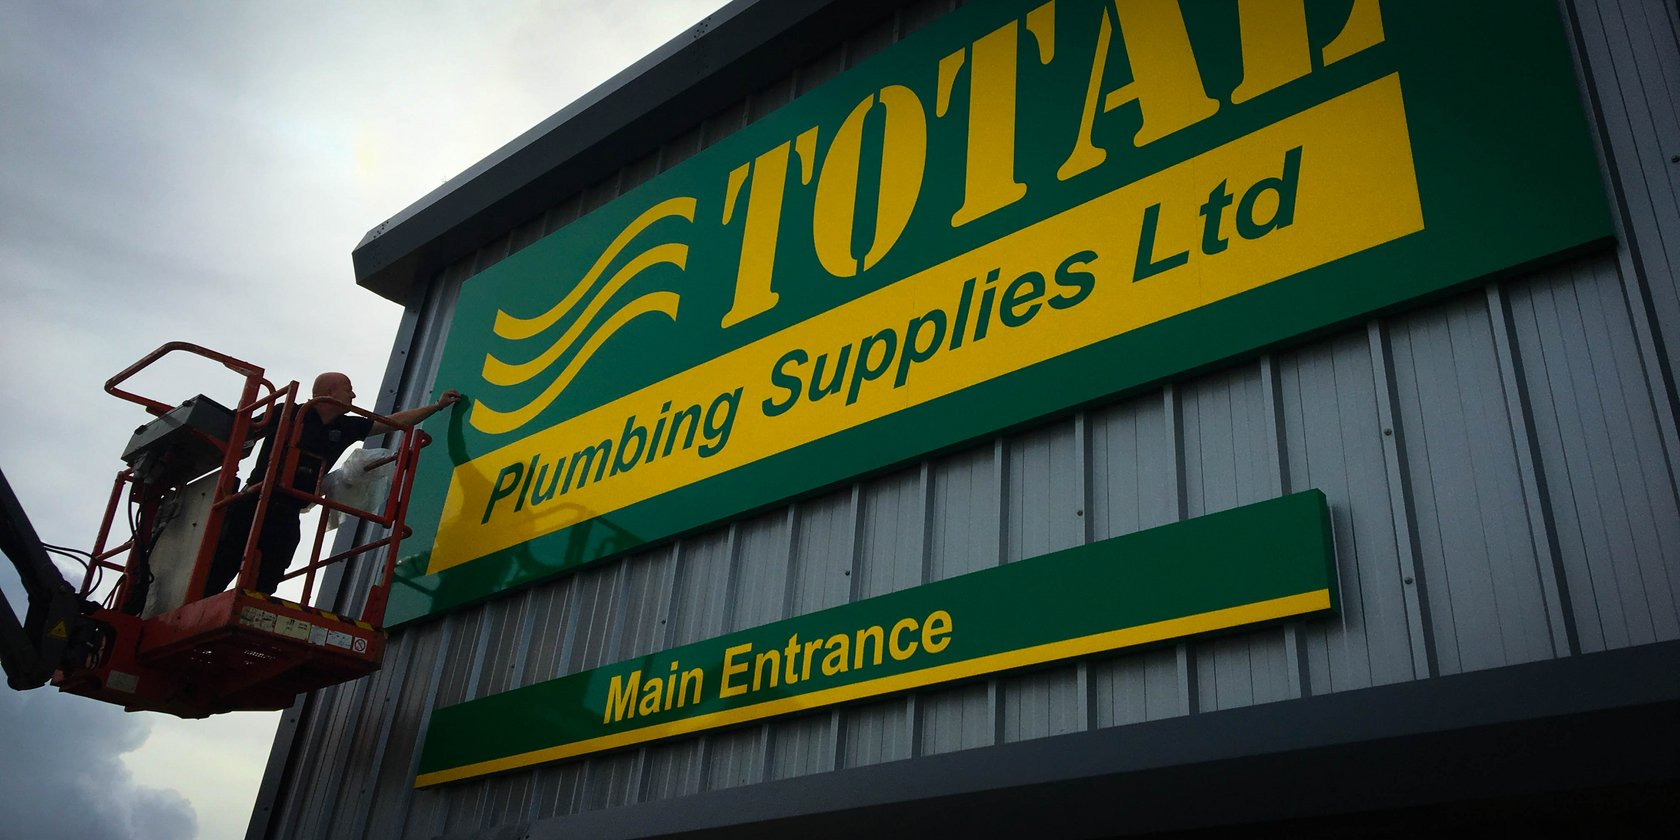 Signage Installation for Total Plumbing Supplies